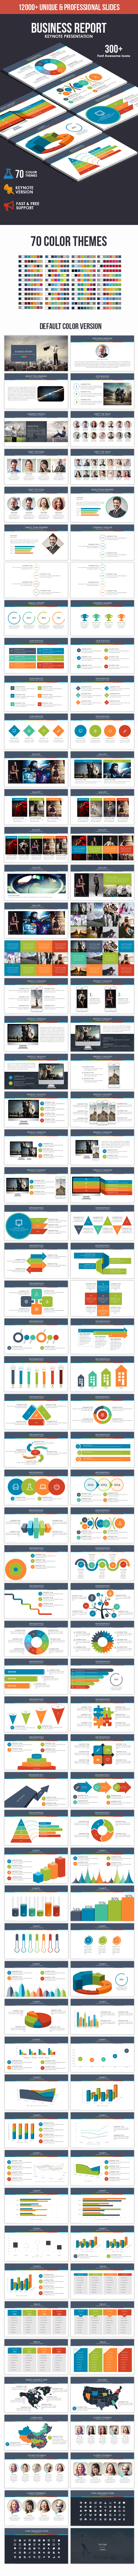 Business Report Keynote Template